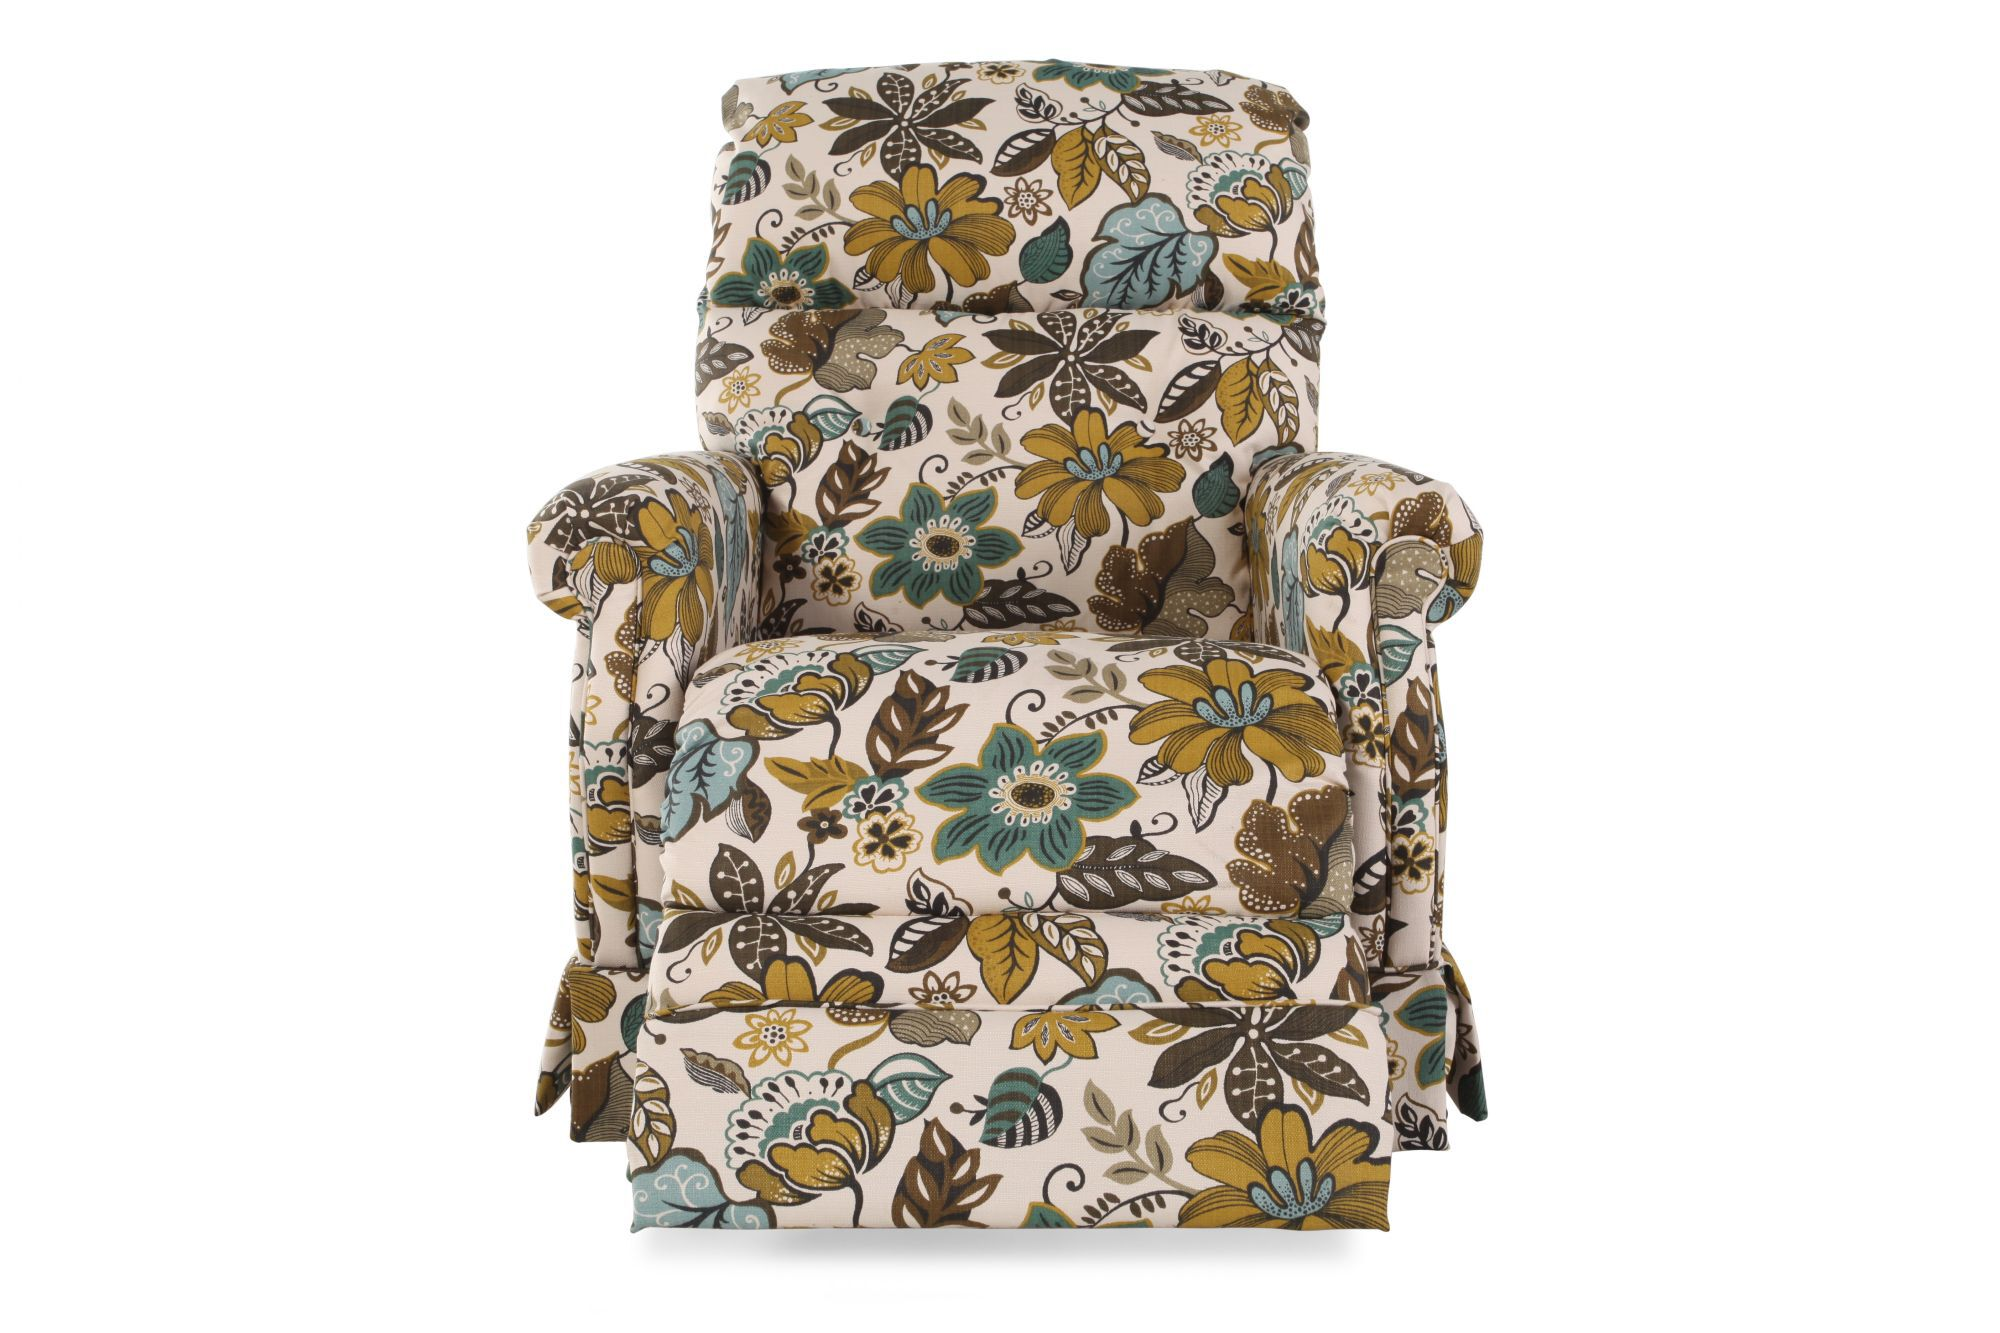 Chaise Z Floral Patterned Skirted Chaise Recliner Mathis Brothers Furniture